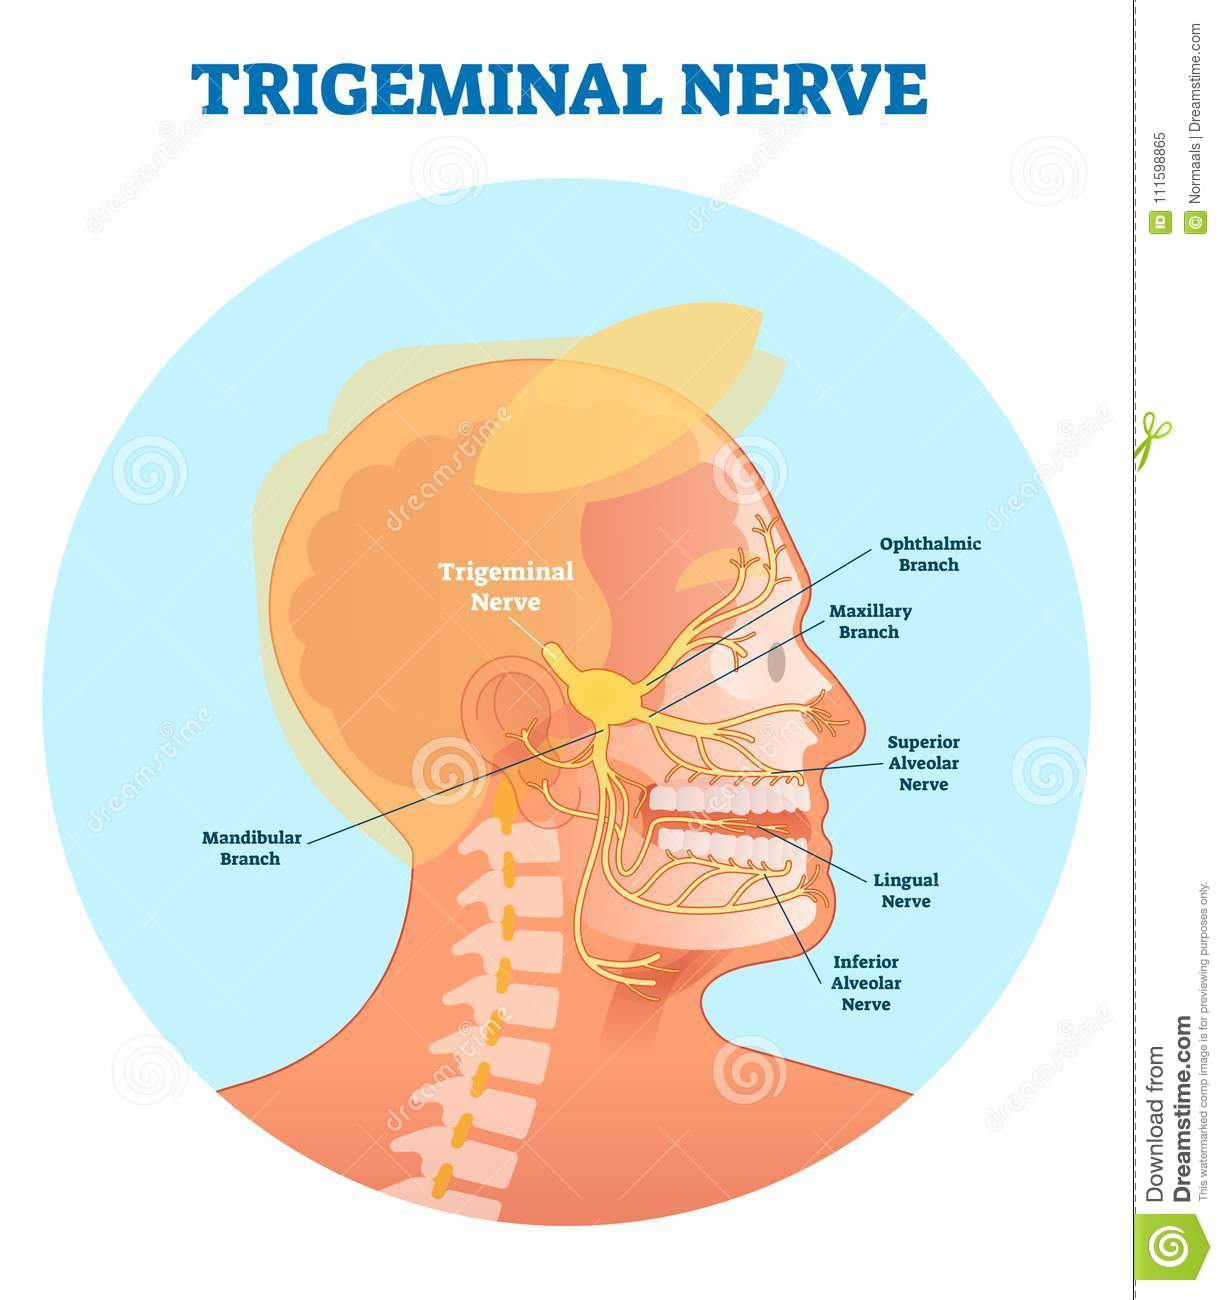 trigeminal nerve diagram island vent plumbing anatomical vector illustration with human head cross section